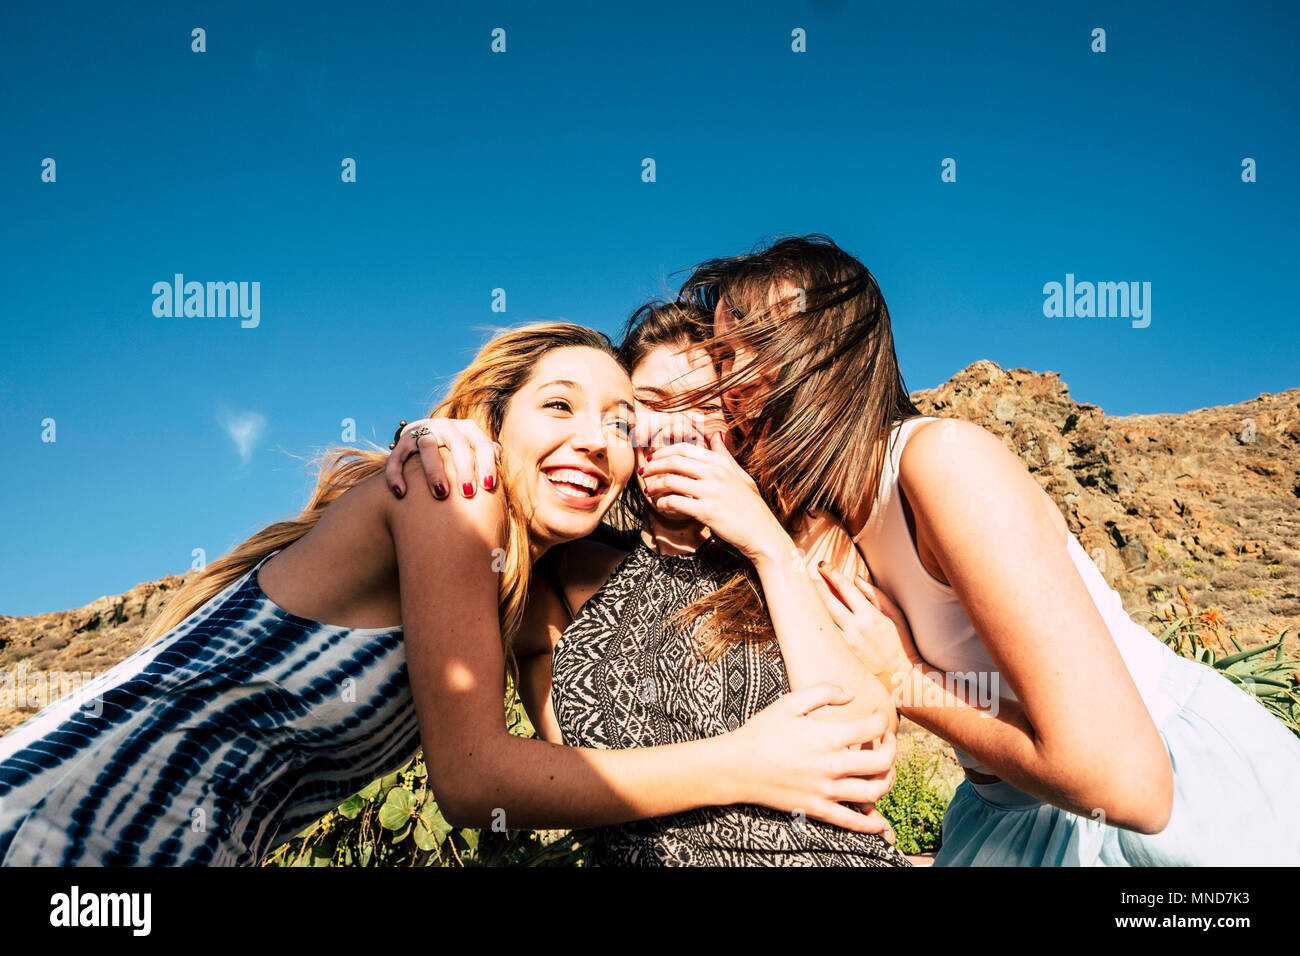 group of 25 years old girls hug and laugh together in a friendswhip teamwork. Sunny day of vacation or free time for a group. Beauty females. - Stock Image